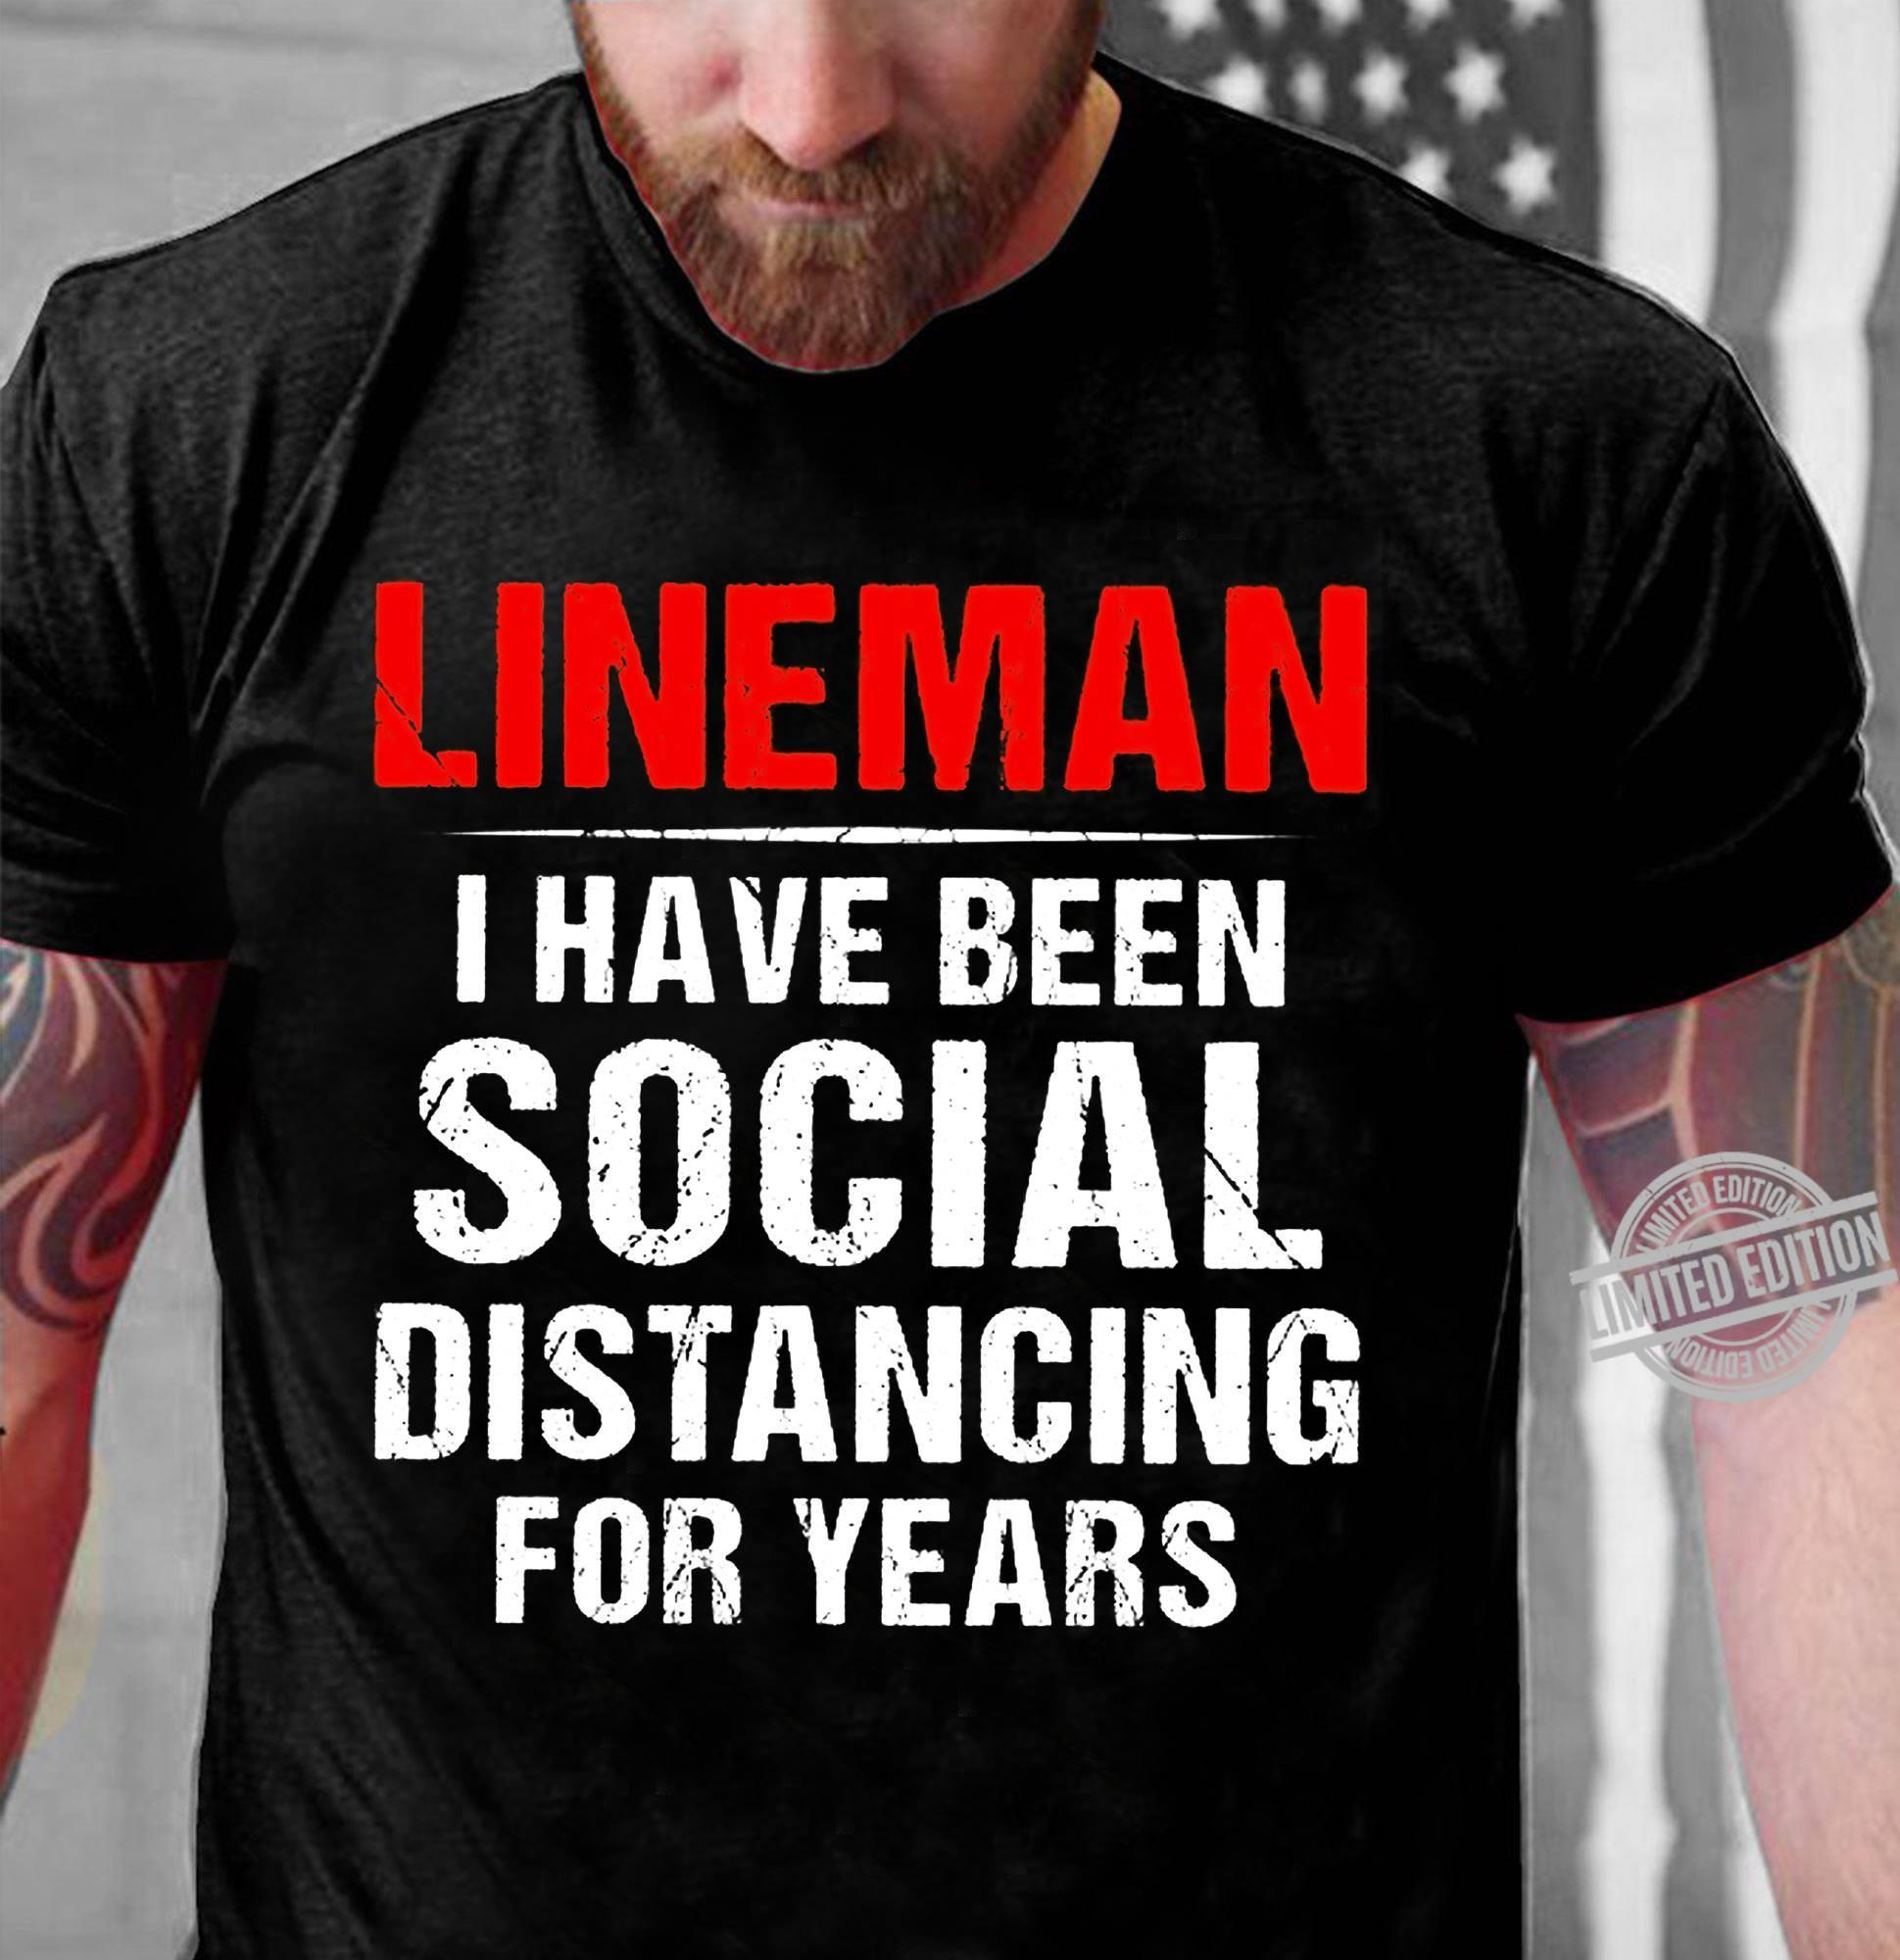 Lineman I Have Been Social Distancing For Years Shirt